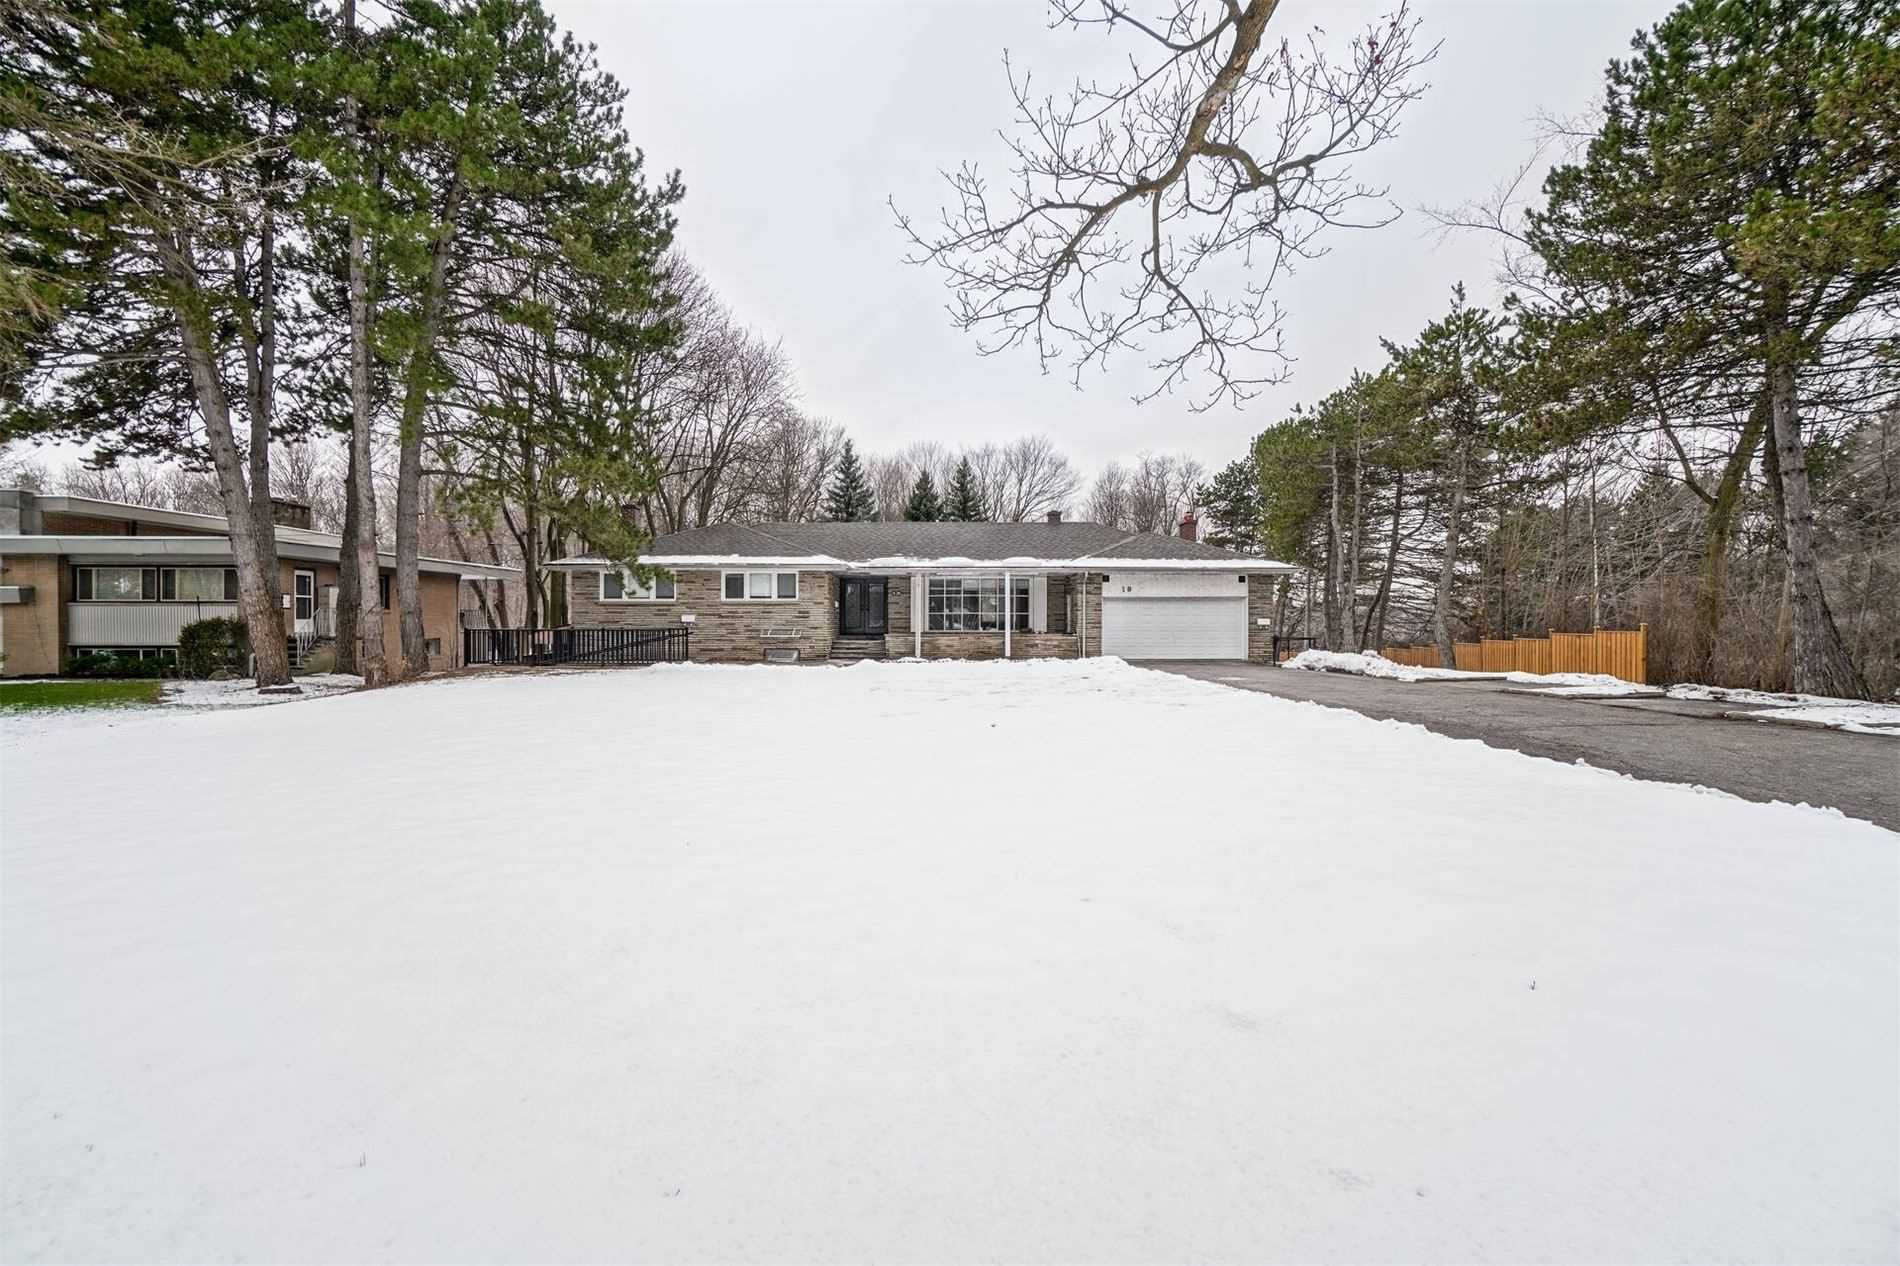 Main Photo: 10 Silverdale Crescent in Toronto: Parkwoods-Donalda House (Bungalow-Raised) for lease (Toronto C13)  : MLS®# C5075785